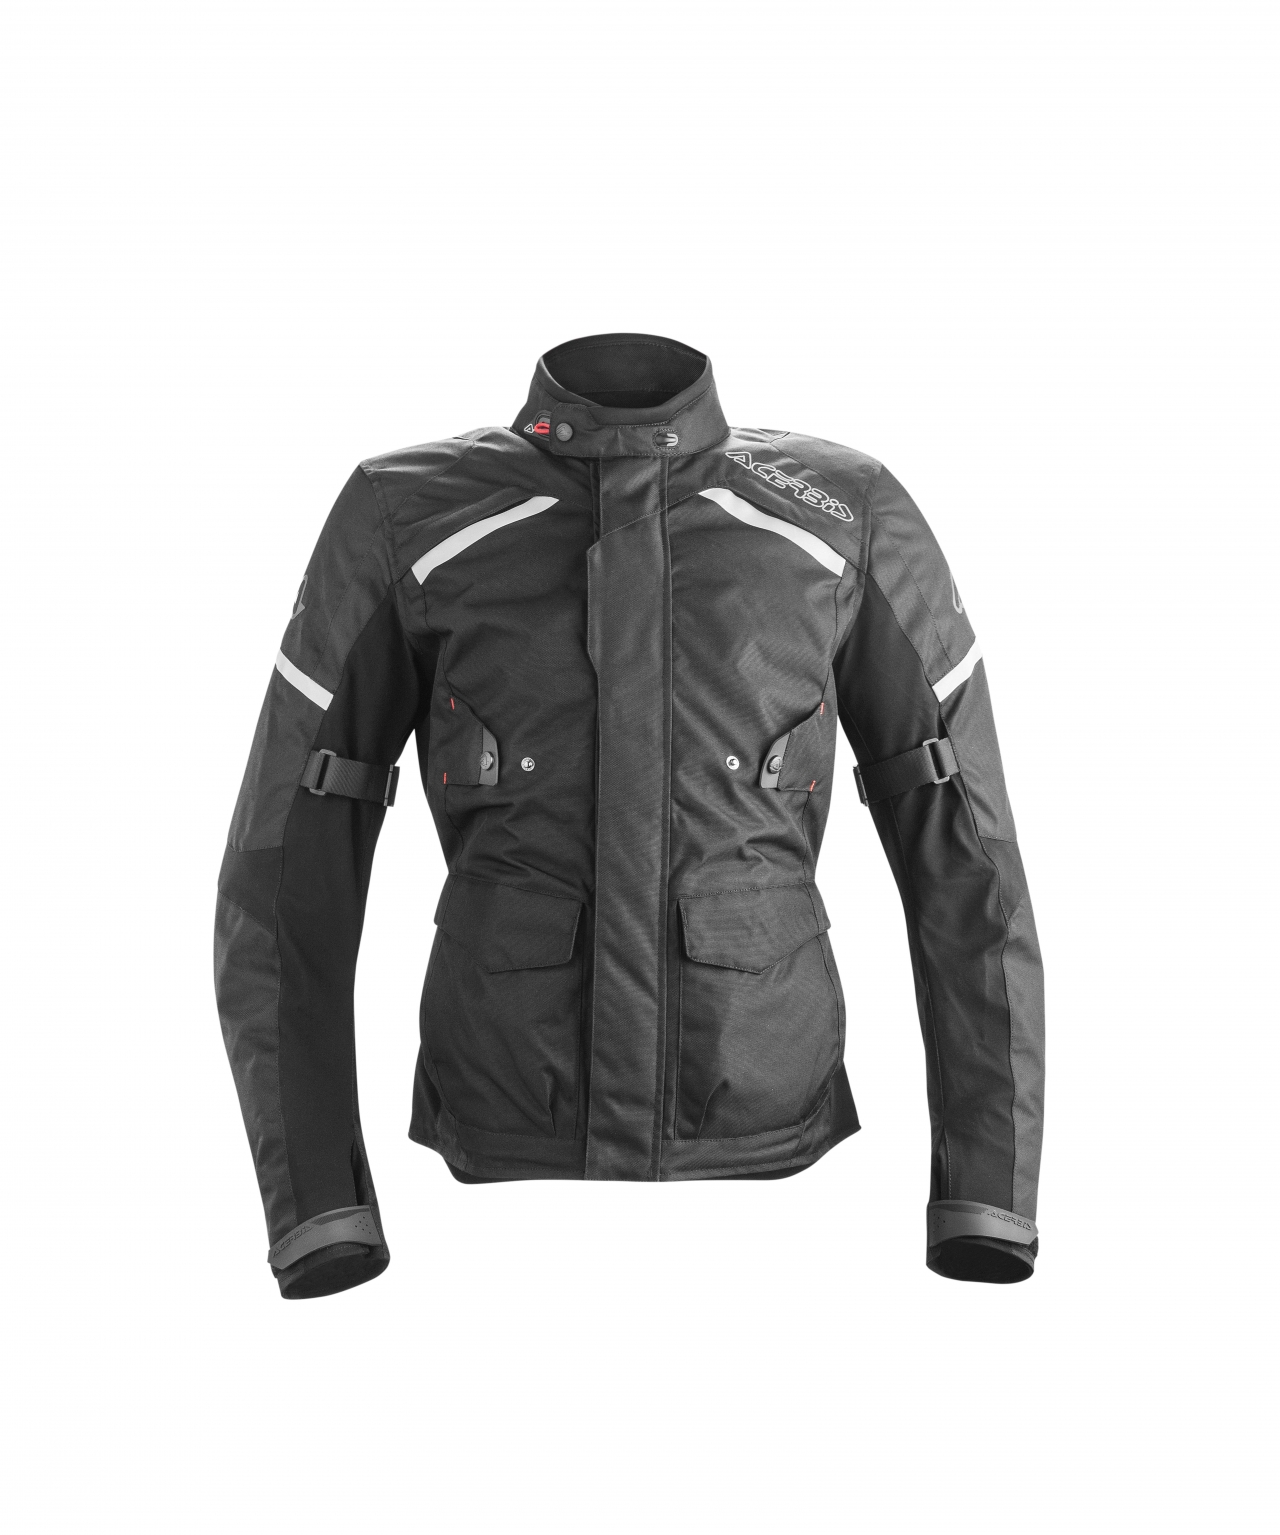 CAZADORA ACERBIS GLEN MEN black L